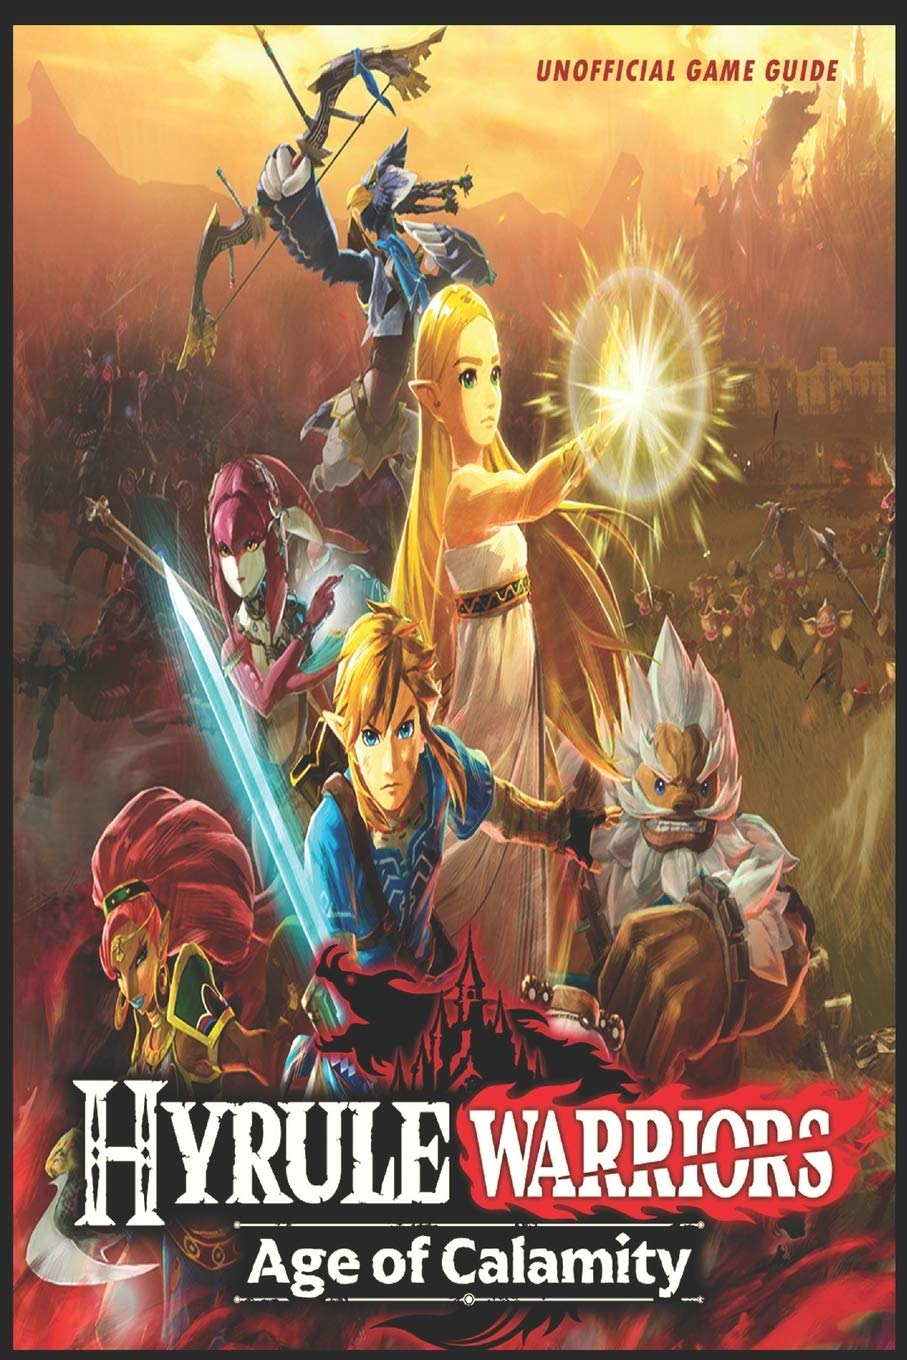 Hyrule Warriors Age Of Calamity The Complete Tips A Z Walkthrough Tips Tricks And More Ann S Guide 9798576877577 Amazon Com Books